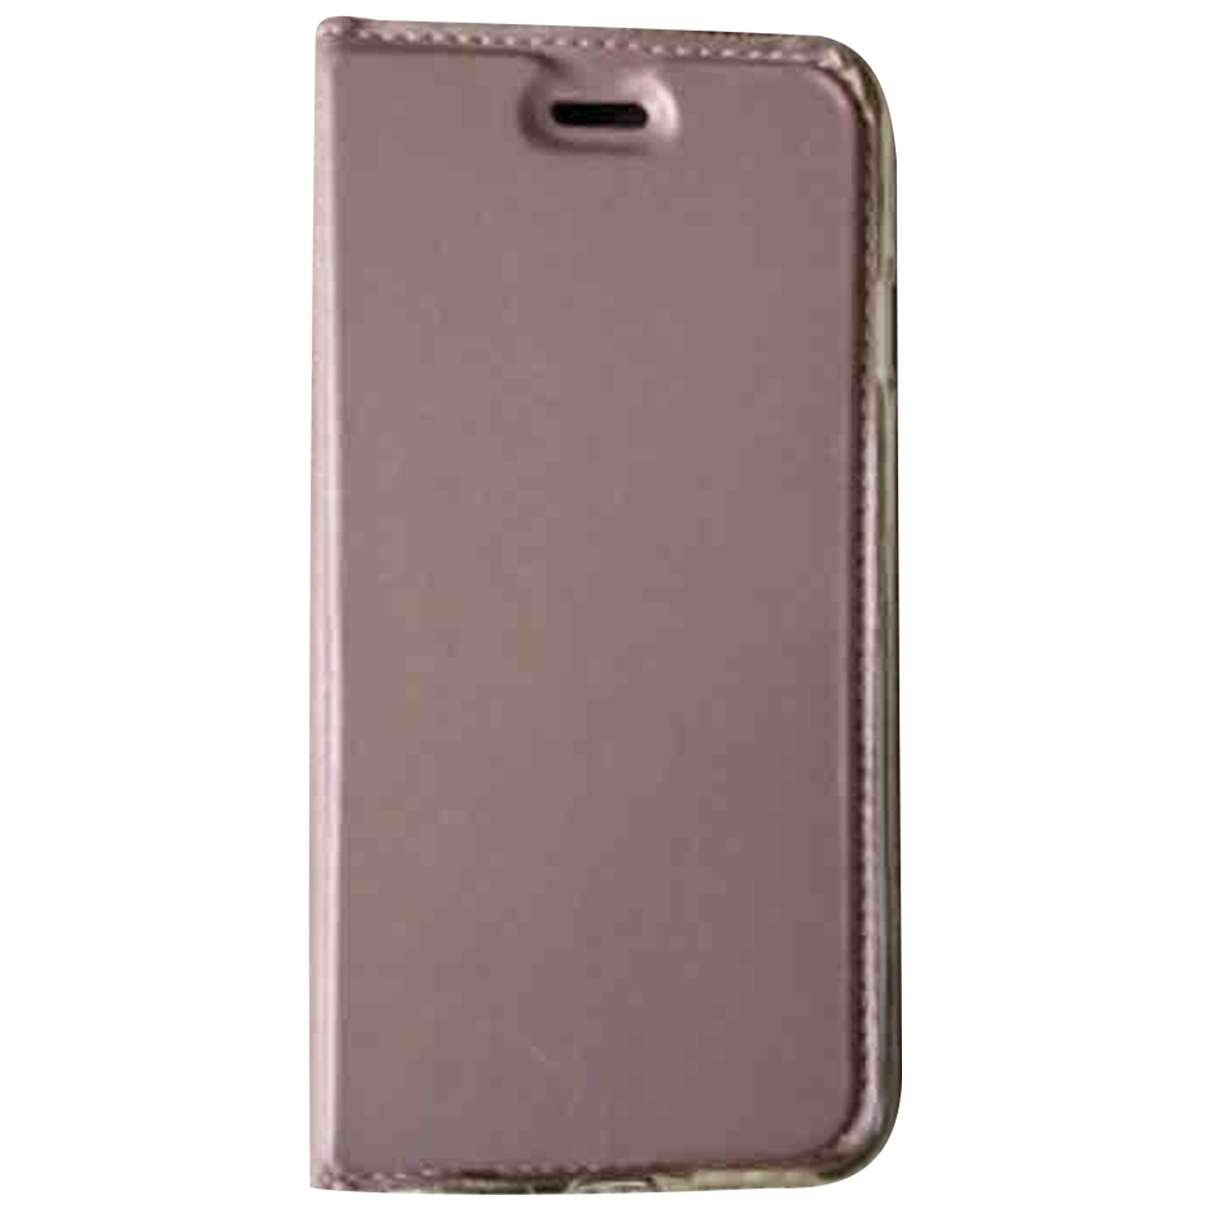 Funda iphone de Cuero Non Signe / Unsigned